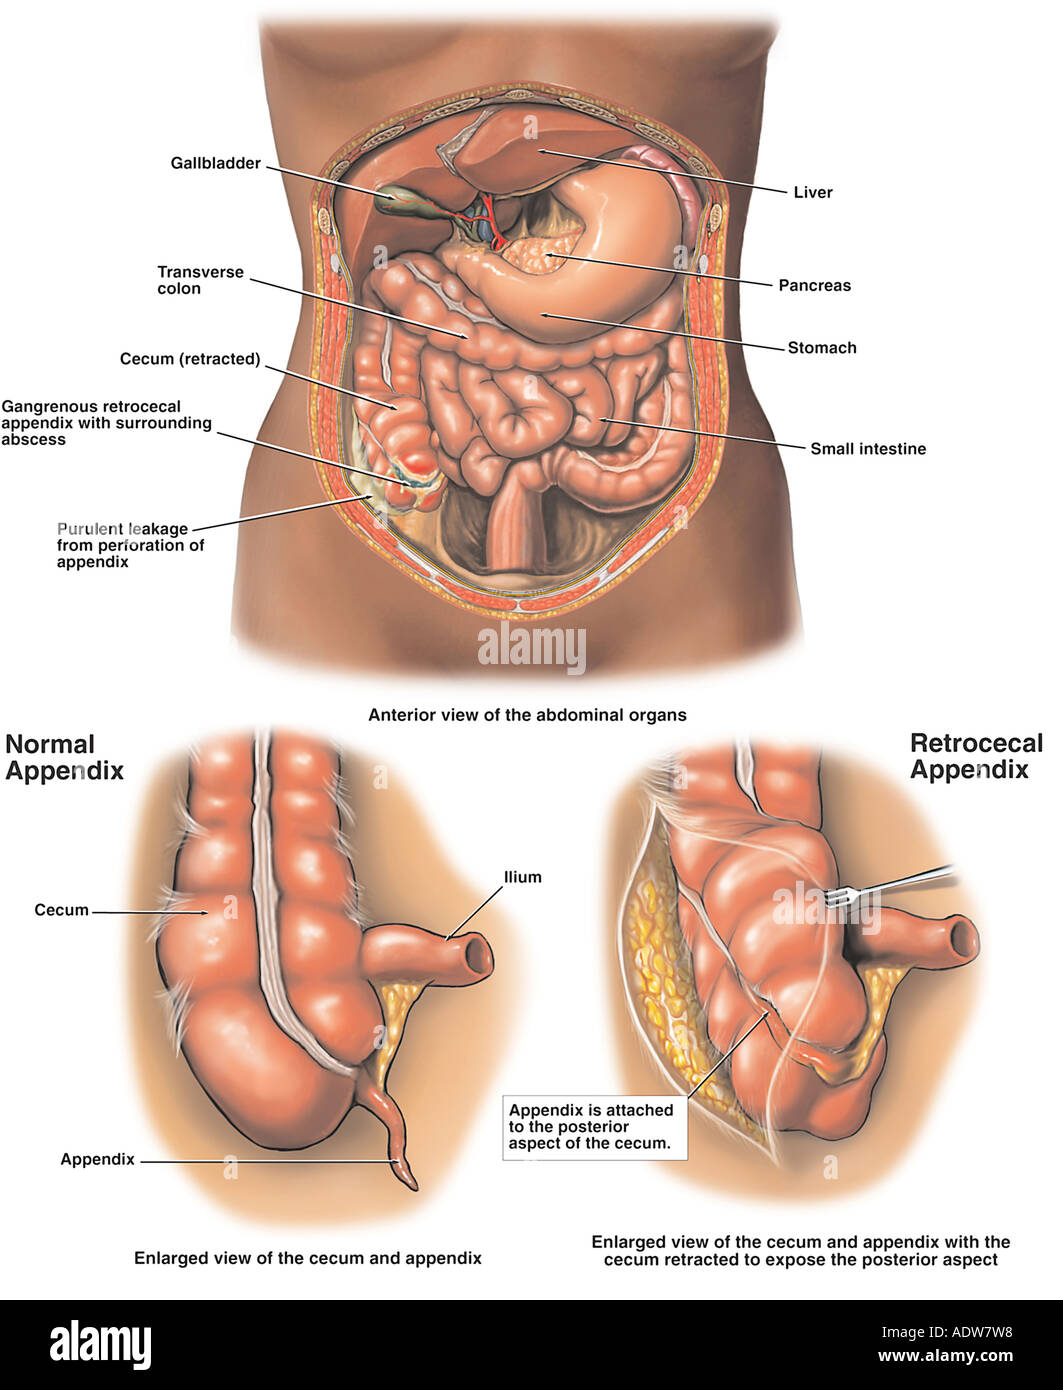 hight resolution of gangrenous appendix appendicitis with perforation and abscess formation stock image